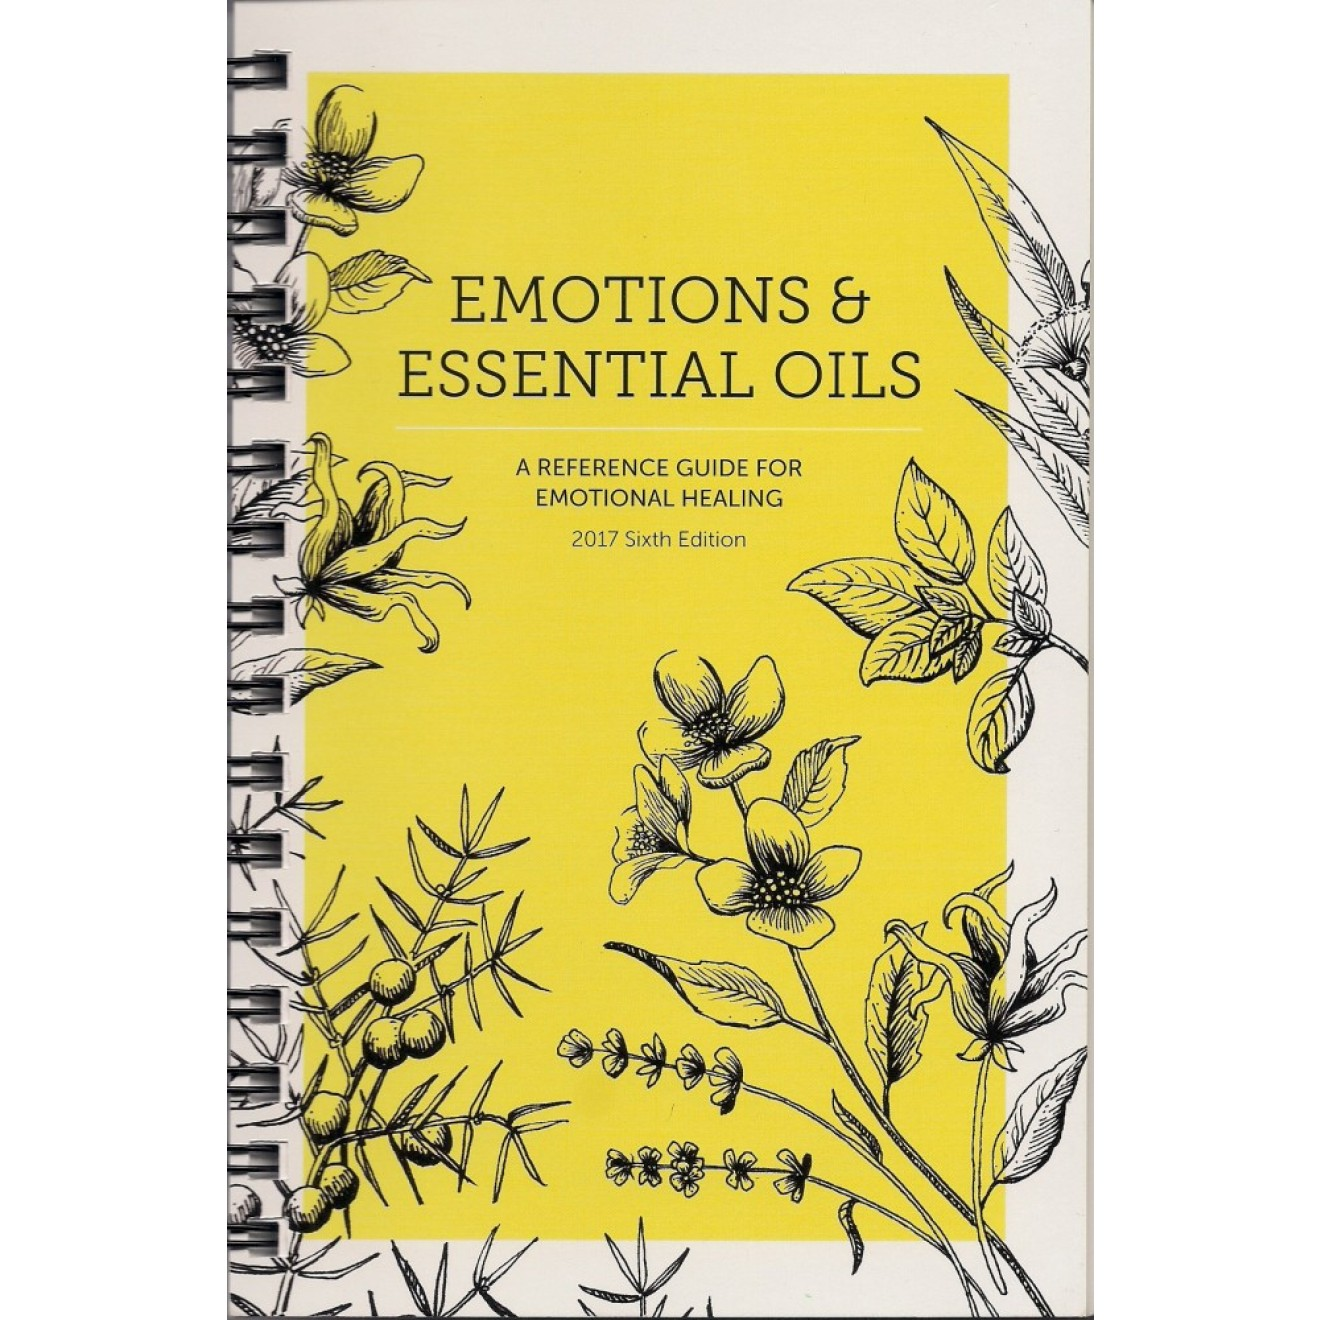 Emotions & Essential Oils